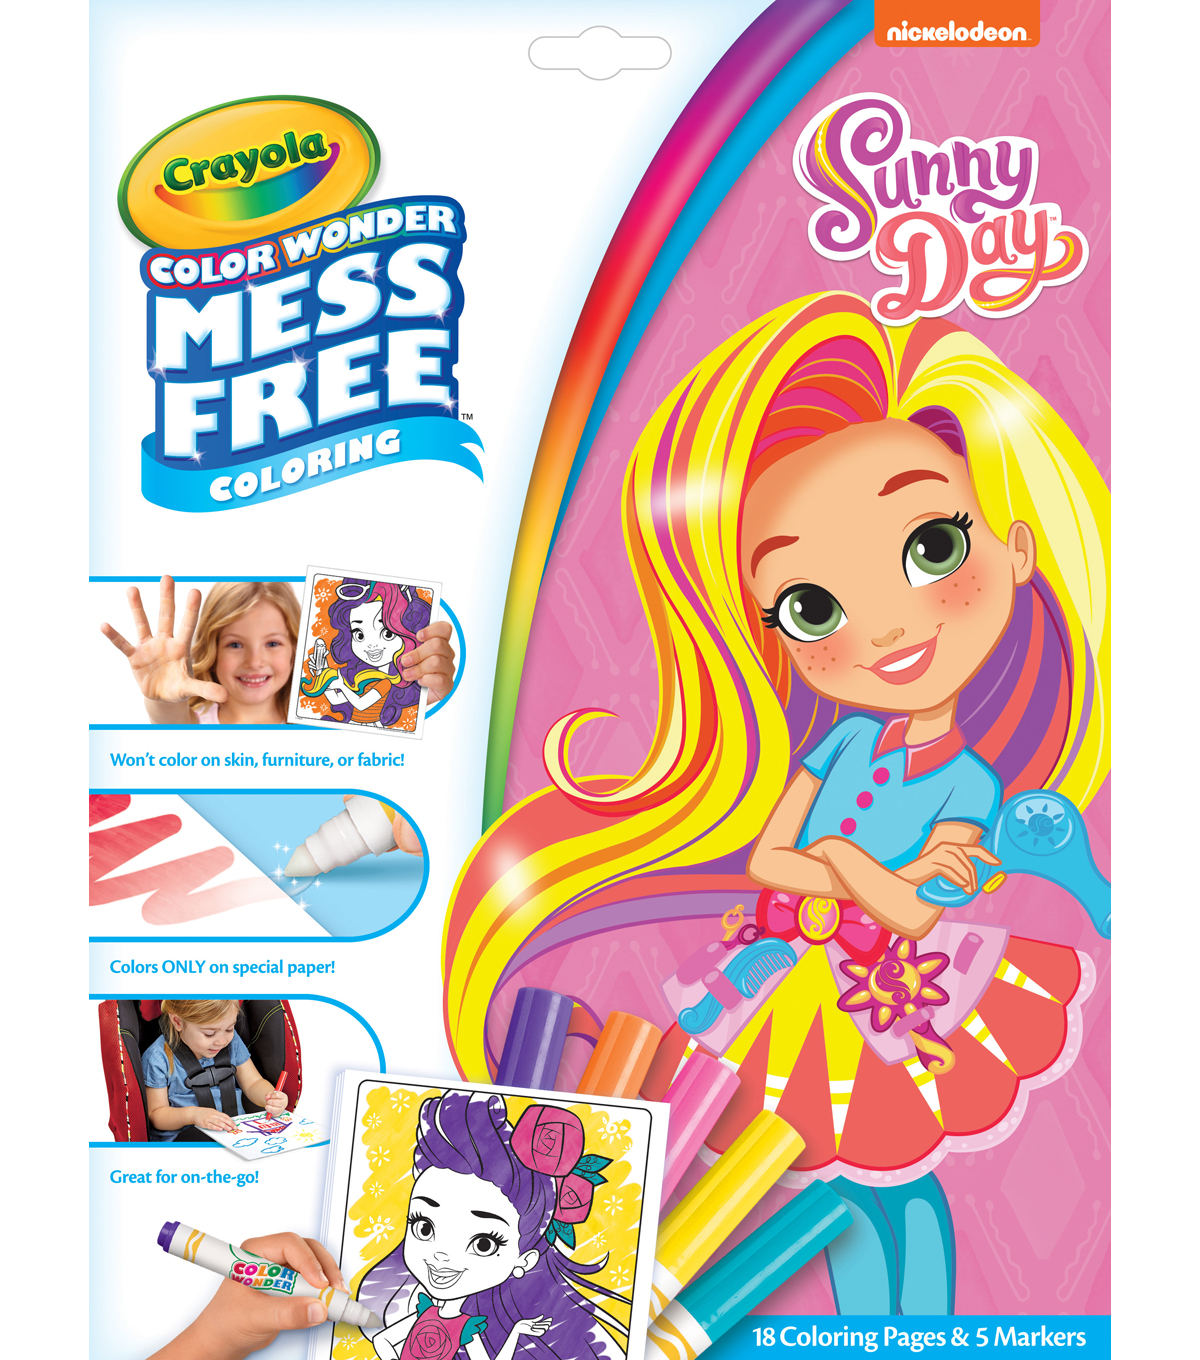 Crayola Color Wonder Mess Free Coloring Book with Markers-Sunny Day ...